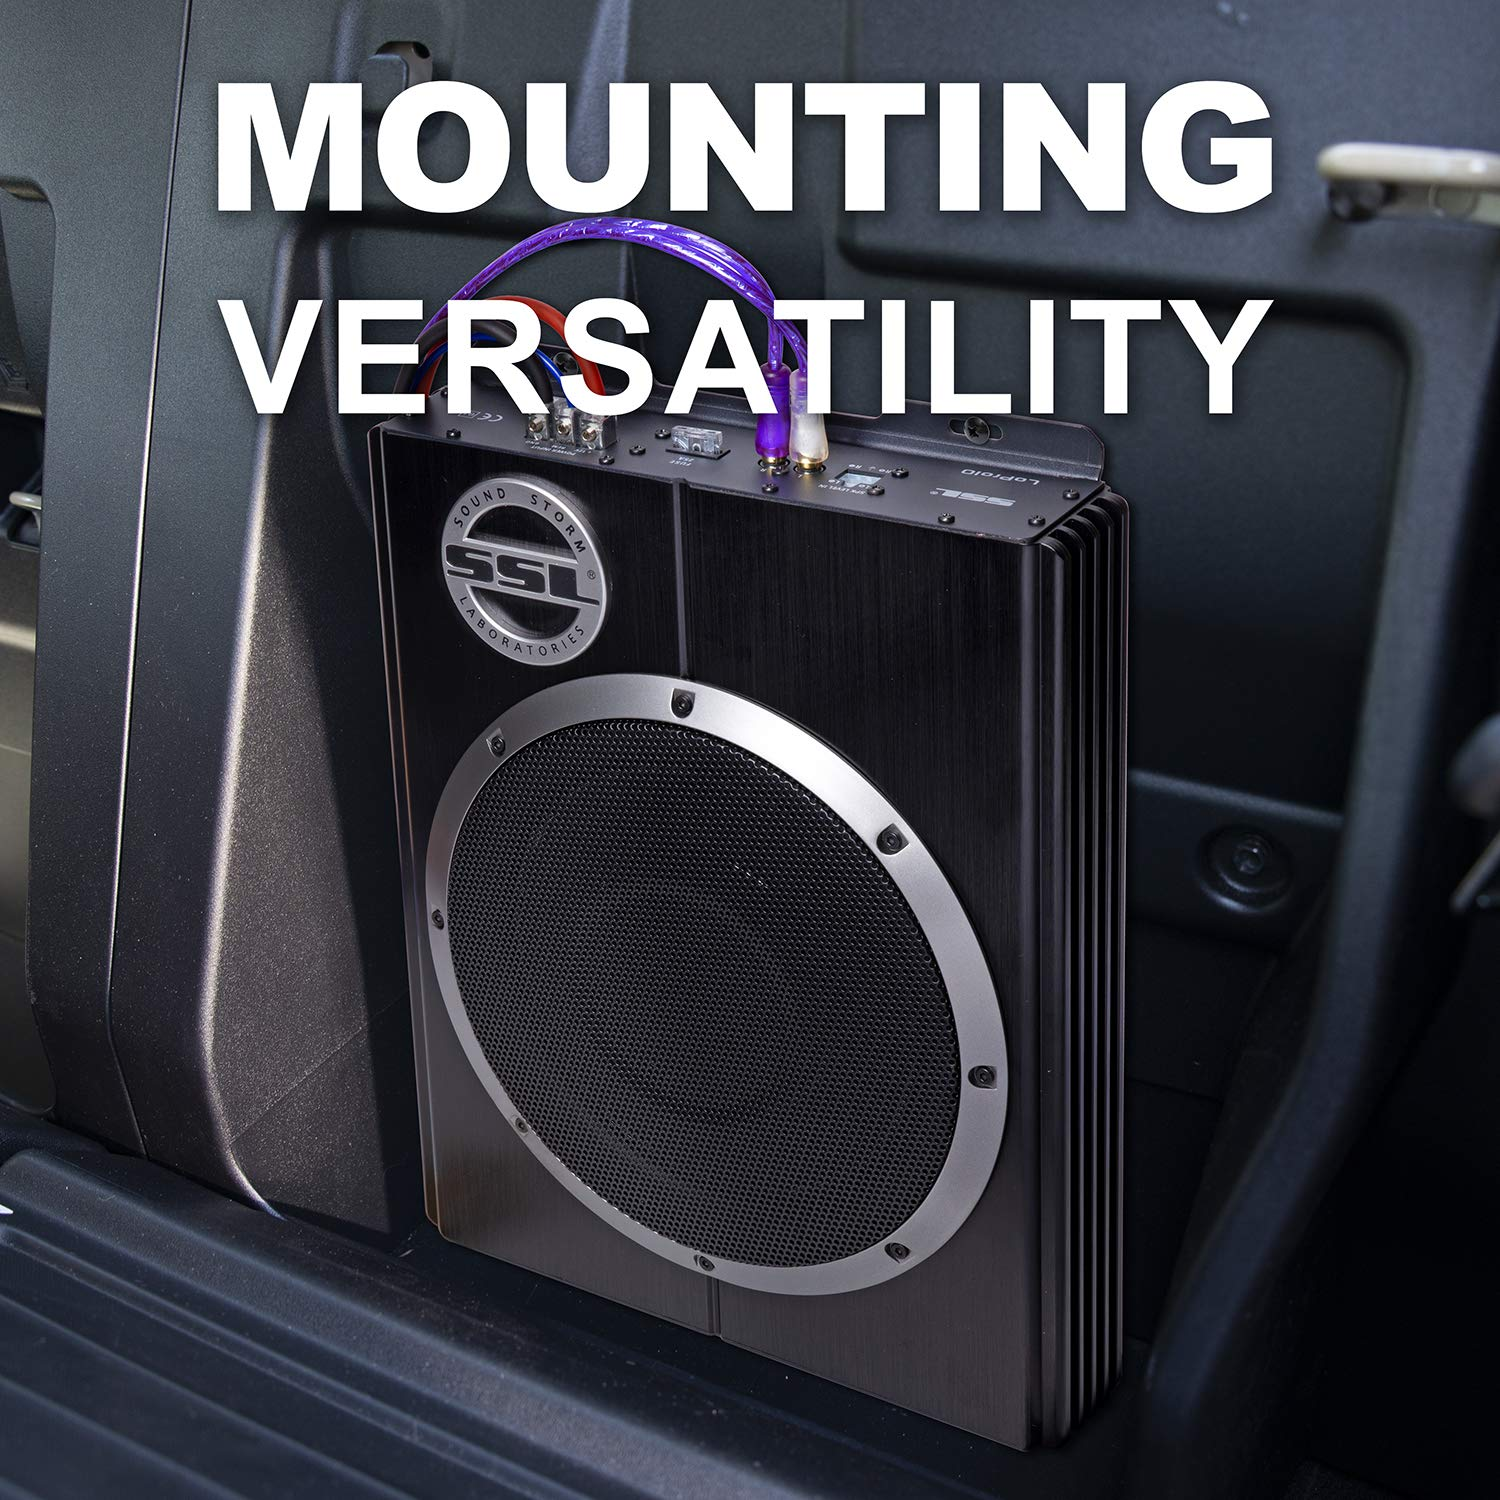 Sound Storm Lopro10 Amplified Car Subwoofer 1200 Watts Higain Speaker Listening Amplifier Circuit Kit Aa5 Max Power Low Profile 10 Inch Remote Control Great For Vehicles